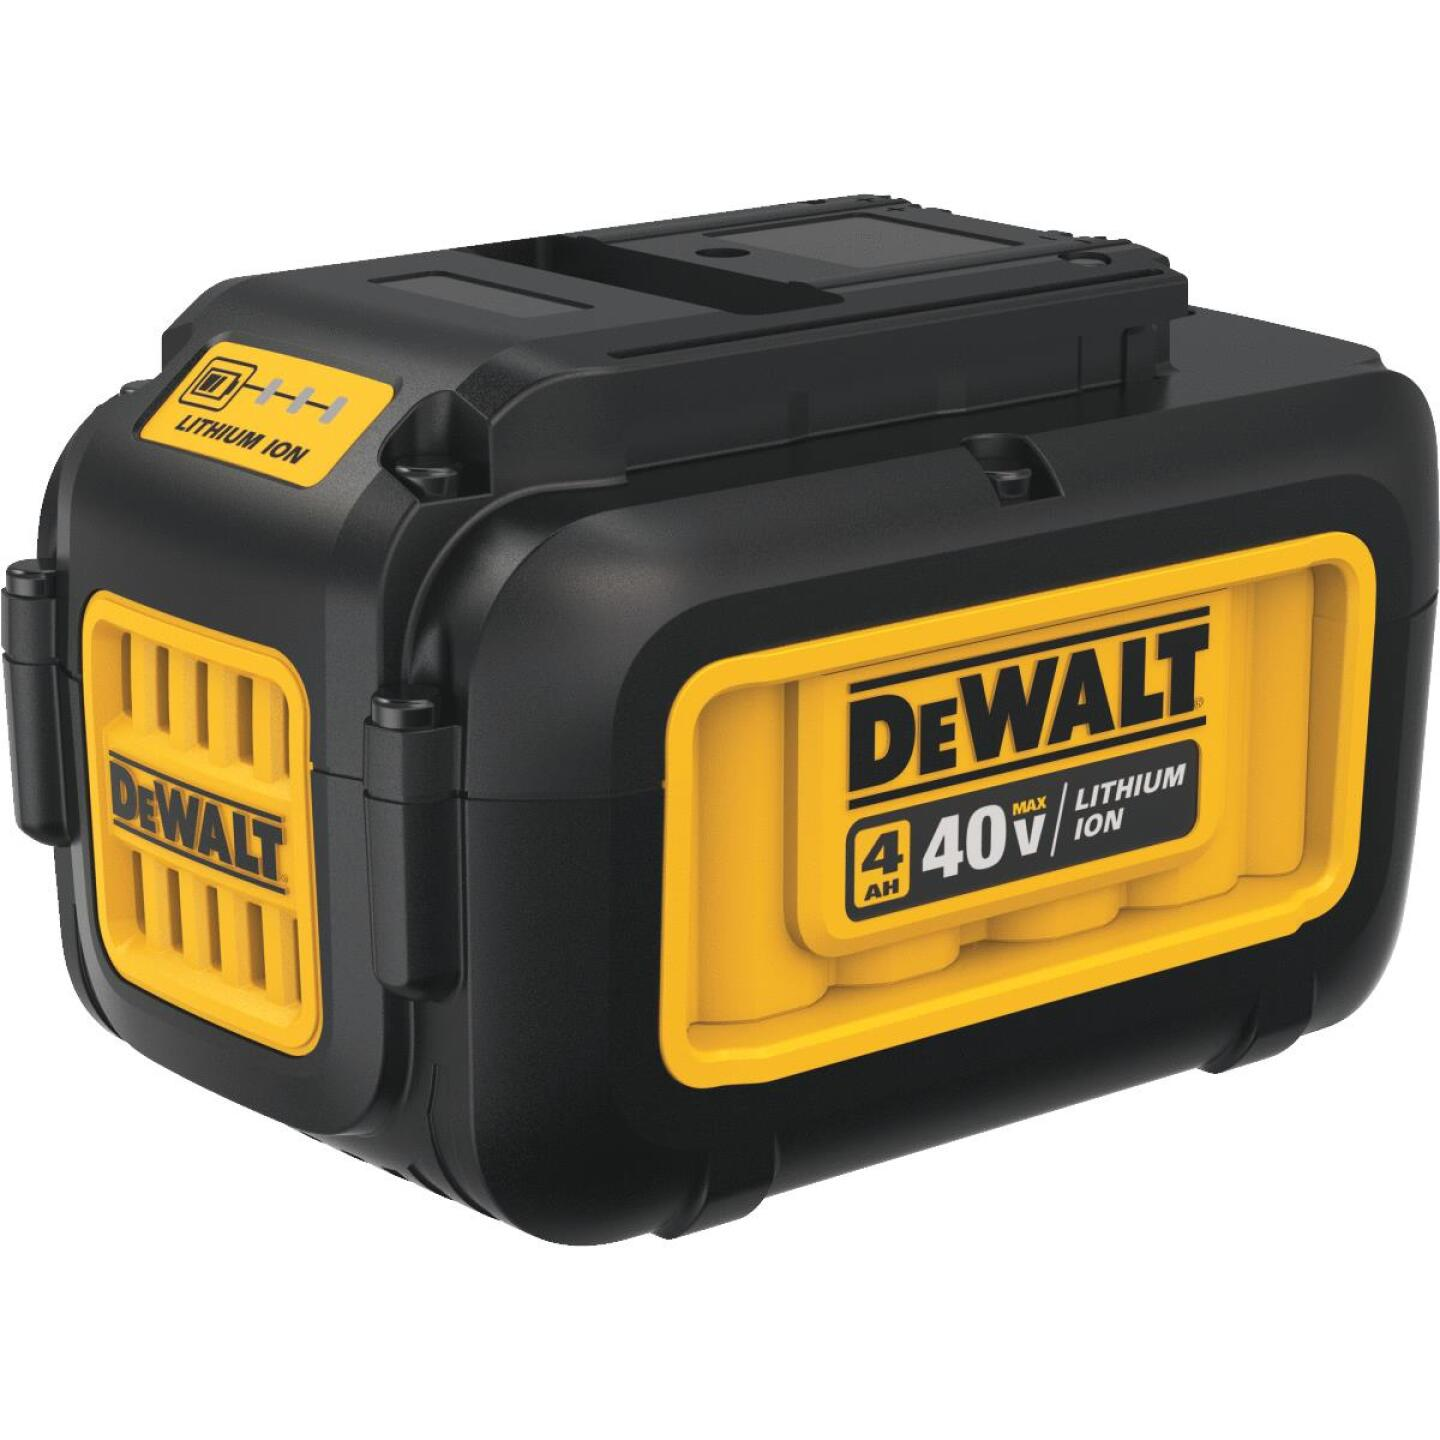 DeWalt 40V MAX Tool Replacement Battery Image 1